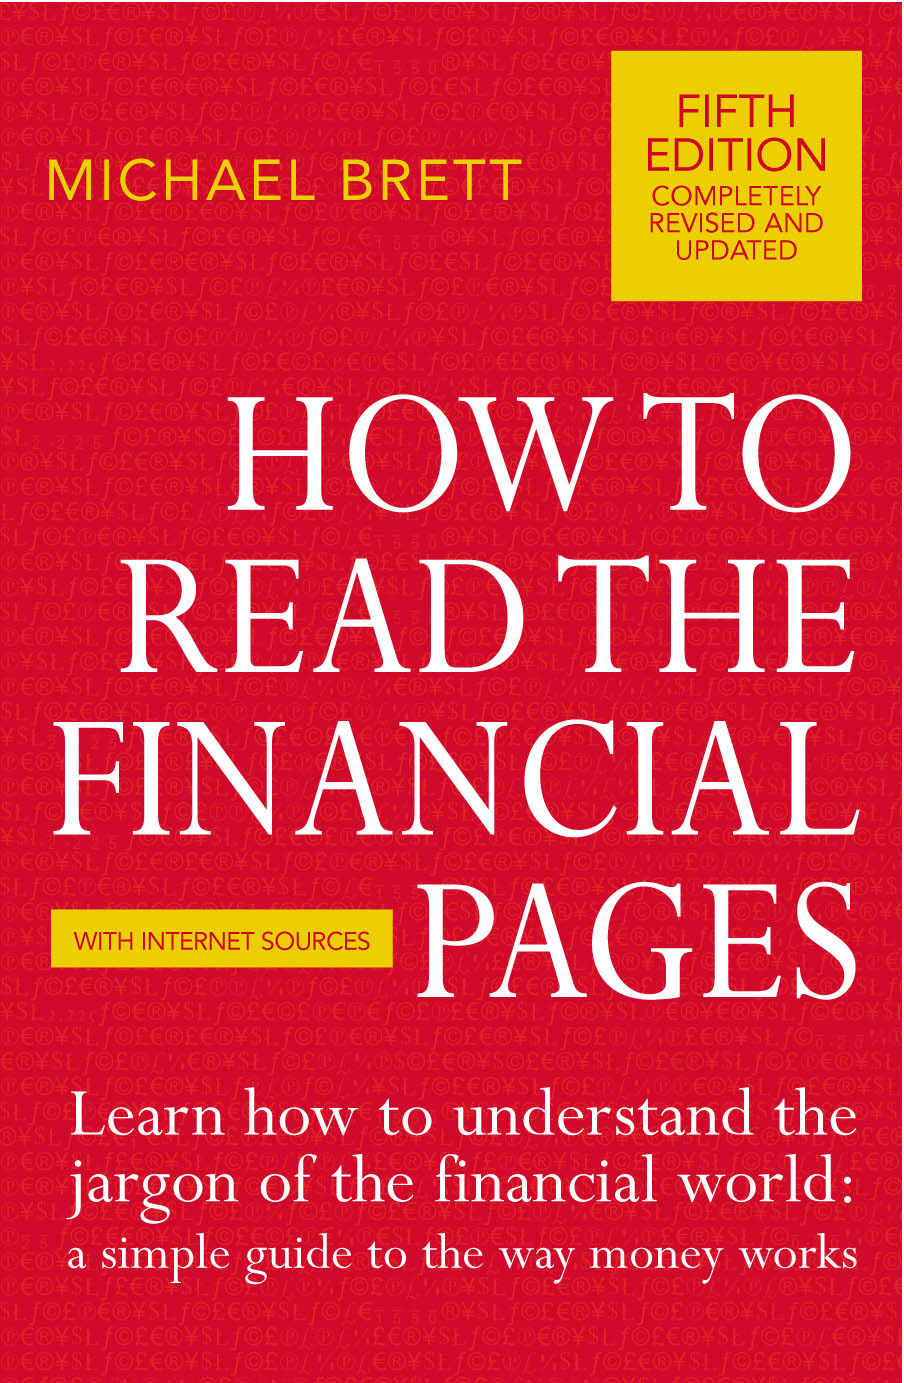 Download Ebook How To Read The Financial Pages by Michael Brett Pdf